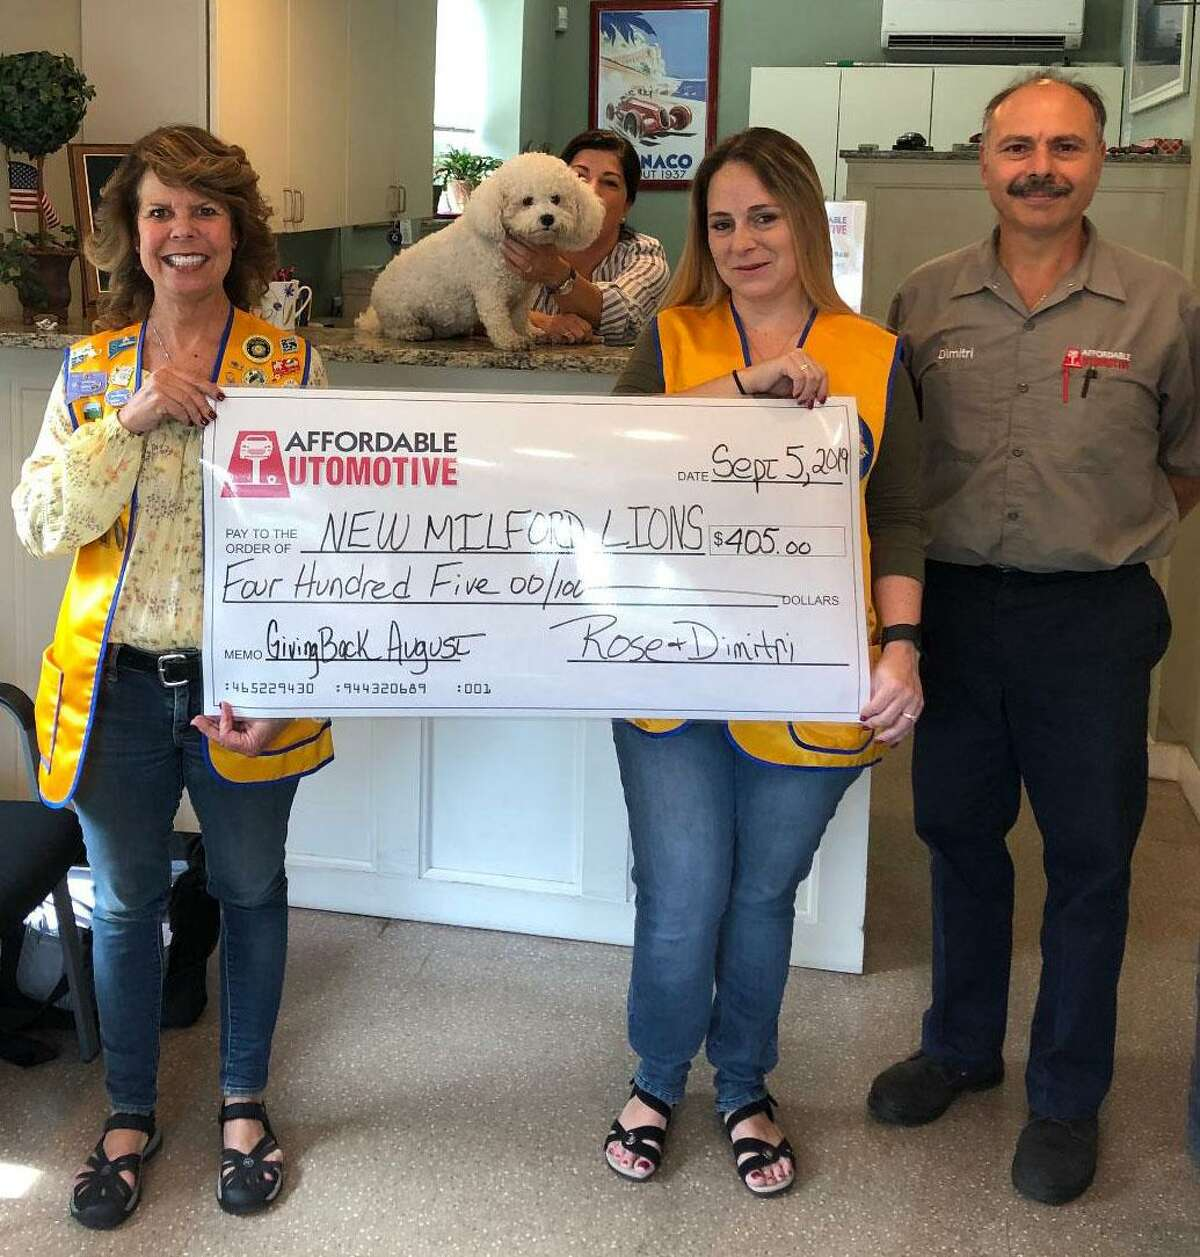 The New Milford Lions Club recently received a check for $405 from Affordable Automotive. The donation was made through the business' Giving Back Program. Each month, Affordable Automotive gives $5 per oil change to a local organization. For August, the business performed 81 oil changes, thus the club received $405. Above are, from left to right, Lions President Tammy Deak, Affordable Automotive co-owner Rose Koulouris, Lion Helena Short and Affordable Automotive co-owner Dimitri Koulouris.